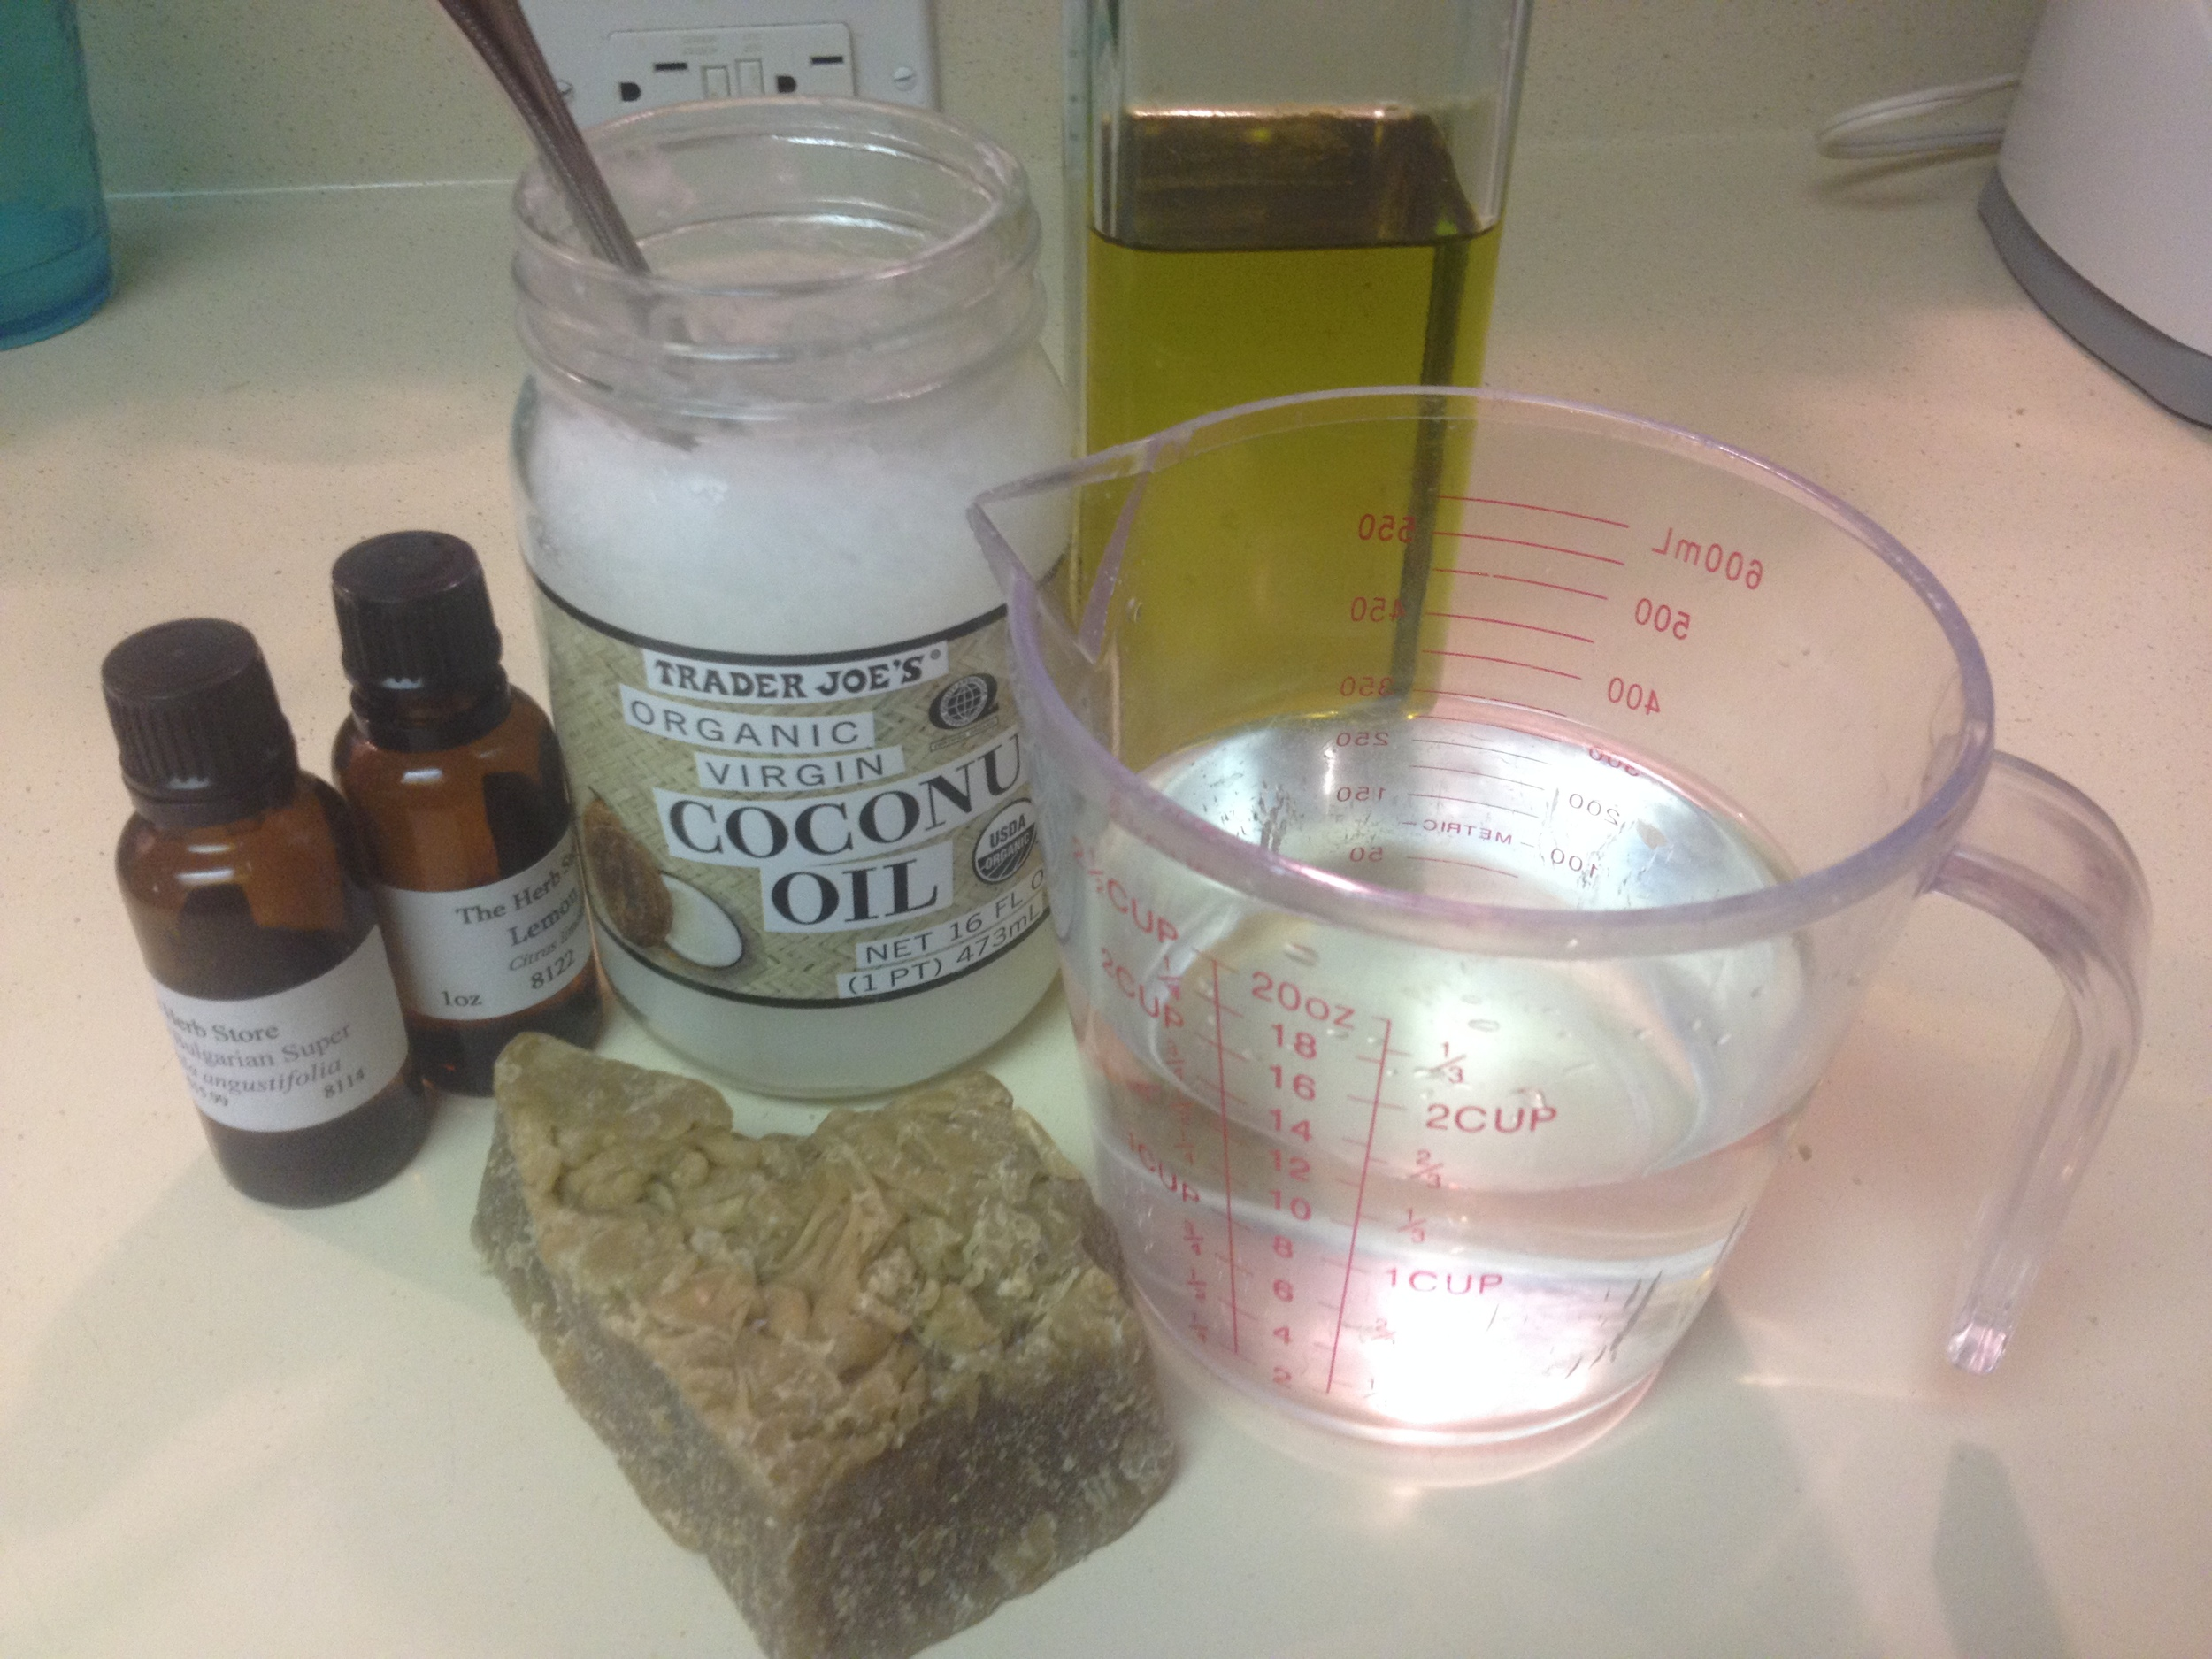 Ingredients from left to right: essential oils, coconut oil, olive oil, distilled water, and beeswax.